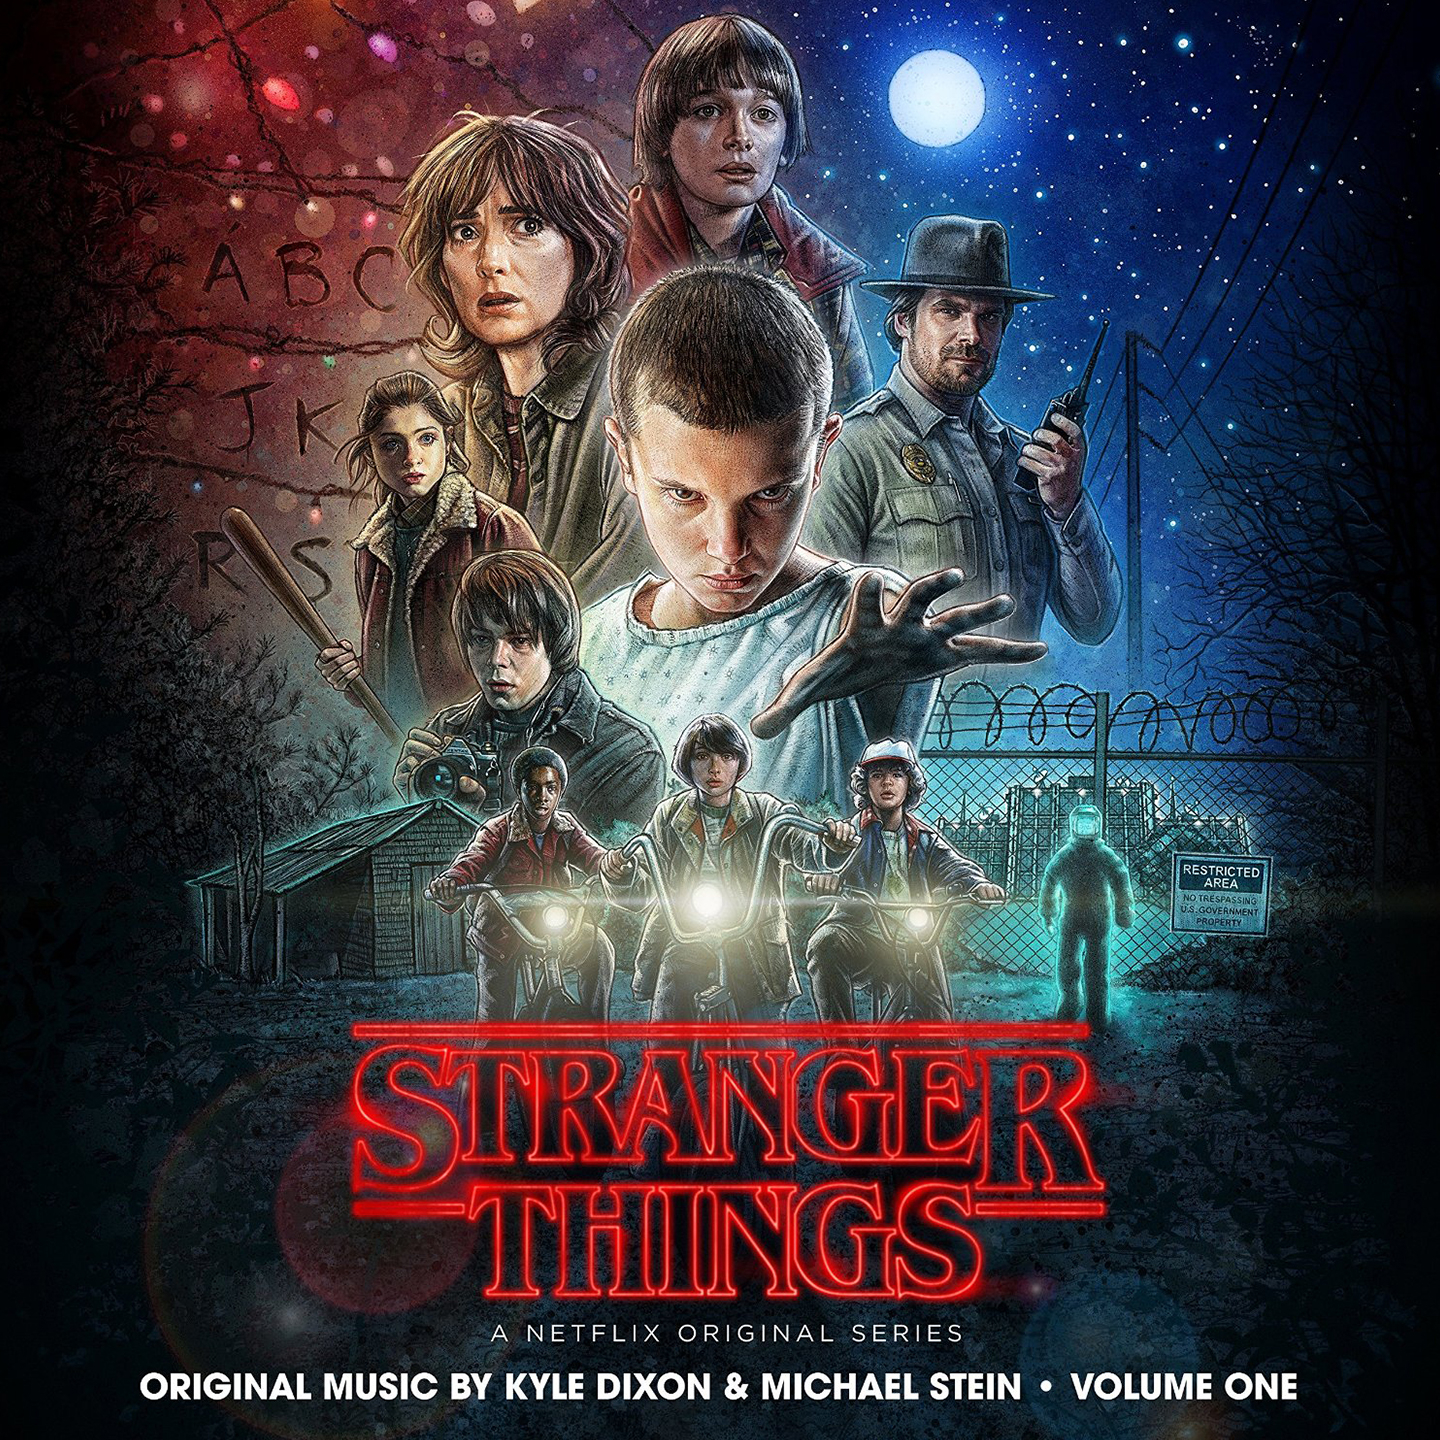 Kyle Dixon & Michael Stein - Stranger Things, Vol. 1 & 2